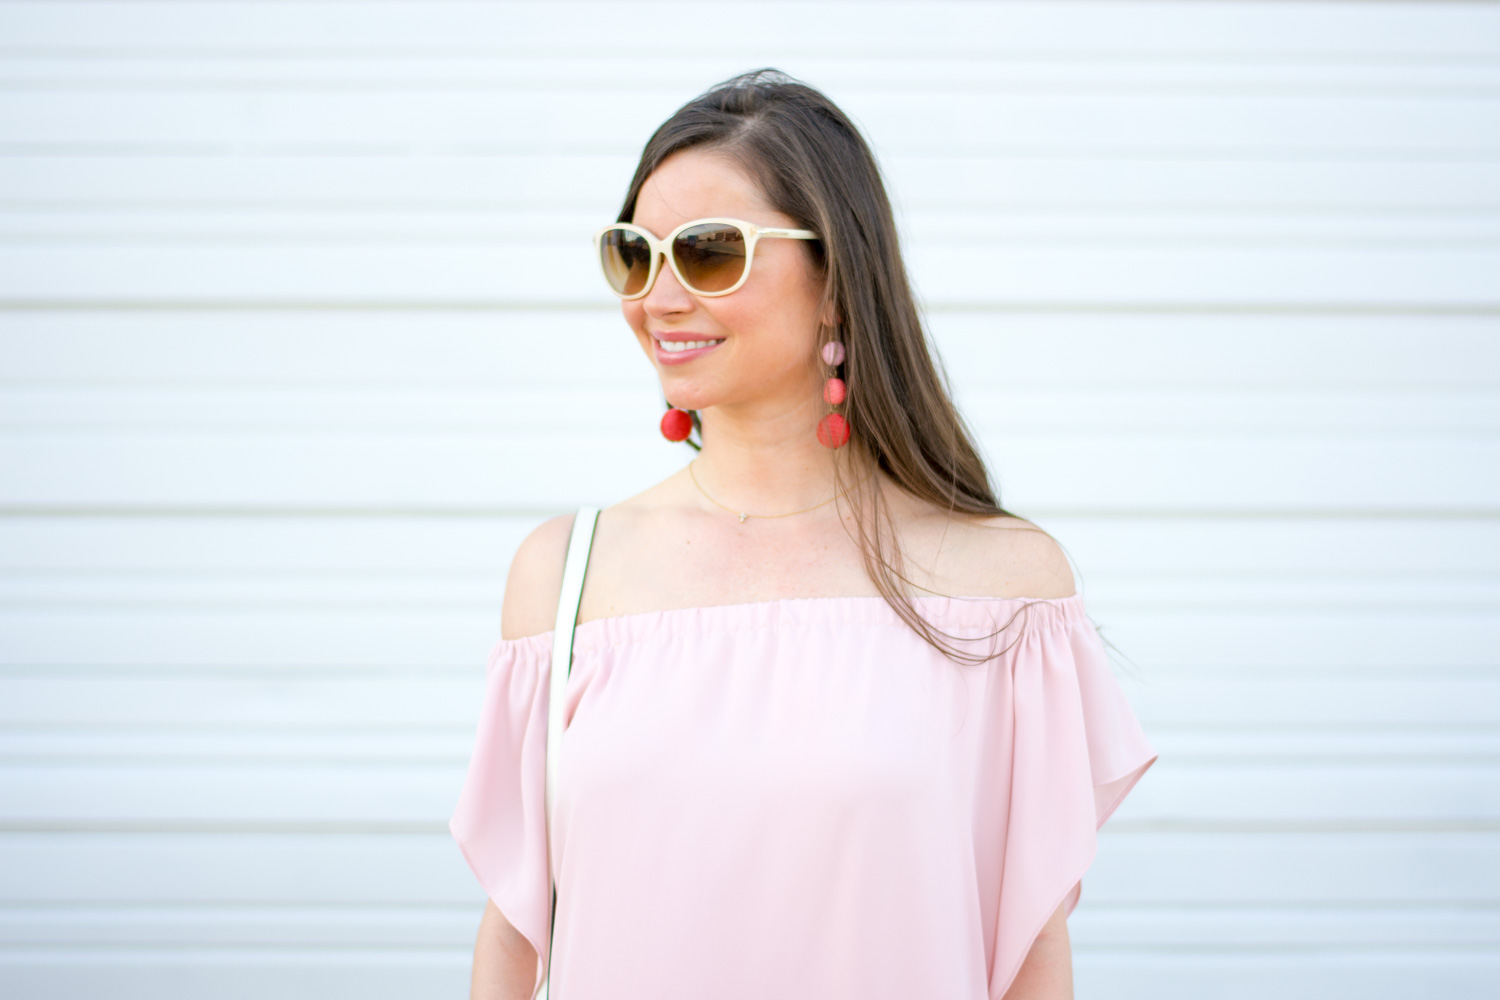 pink top, white sunglasses